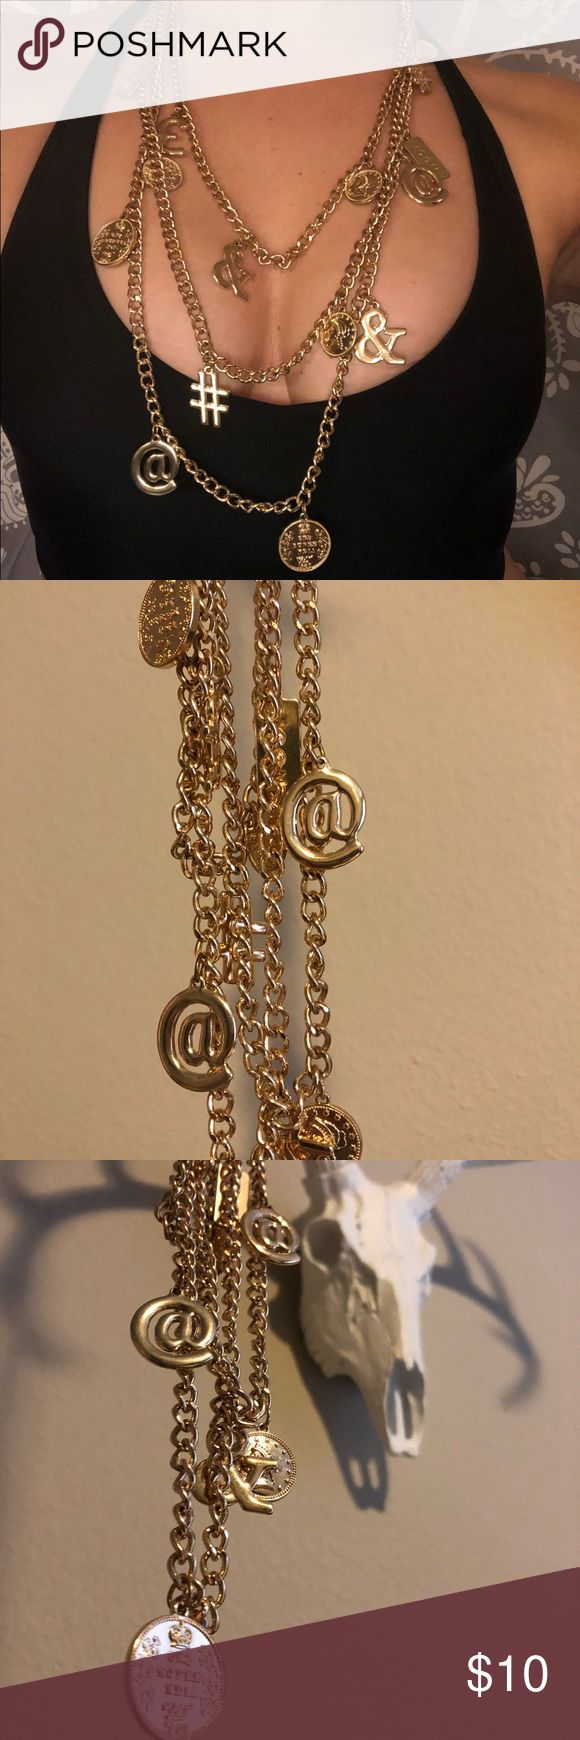 Gold Chain #️⃣ Necklace Three layered thick gold chain necklace with chunky social media symbols (@,&,#) and coins. Great for going out or dressing casual! Forever 21 Jewelry Necklaces